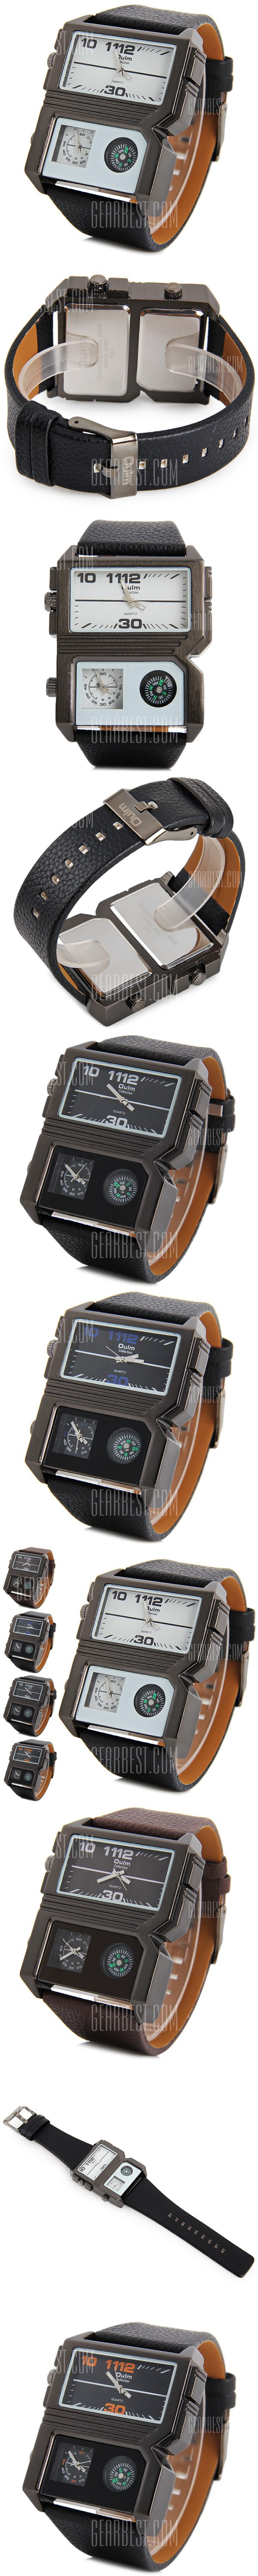 Oulm 3561 Compass Military Sports Watch Double Movt Male Wristwatch - FREE SHIPPING - Price: $10.42 - Buy Now: https://ariani-shop.com/s/121845